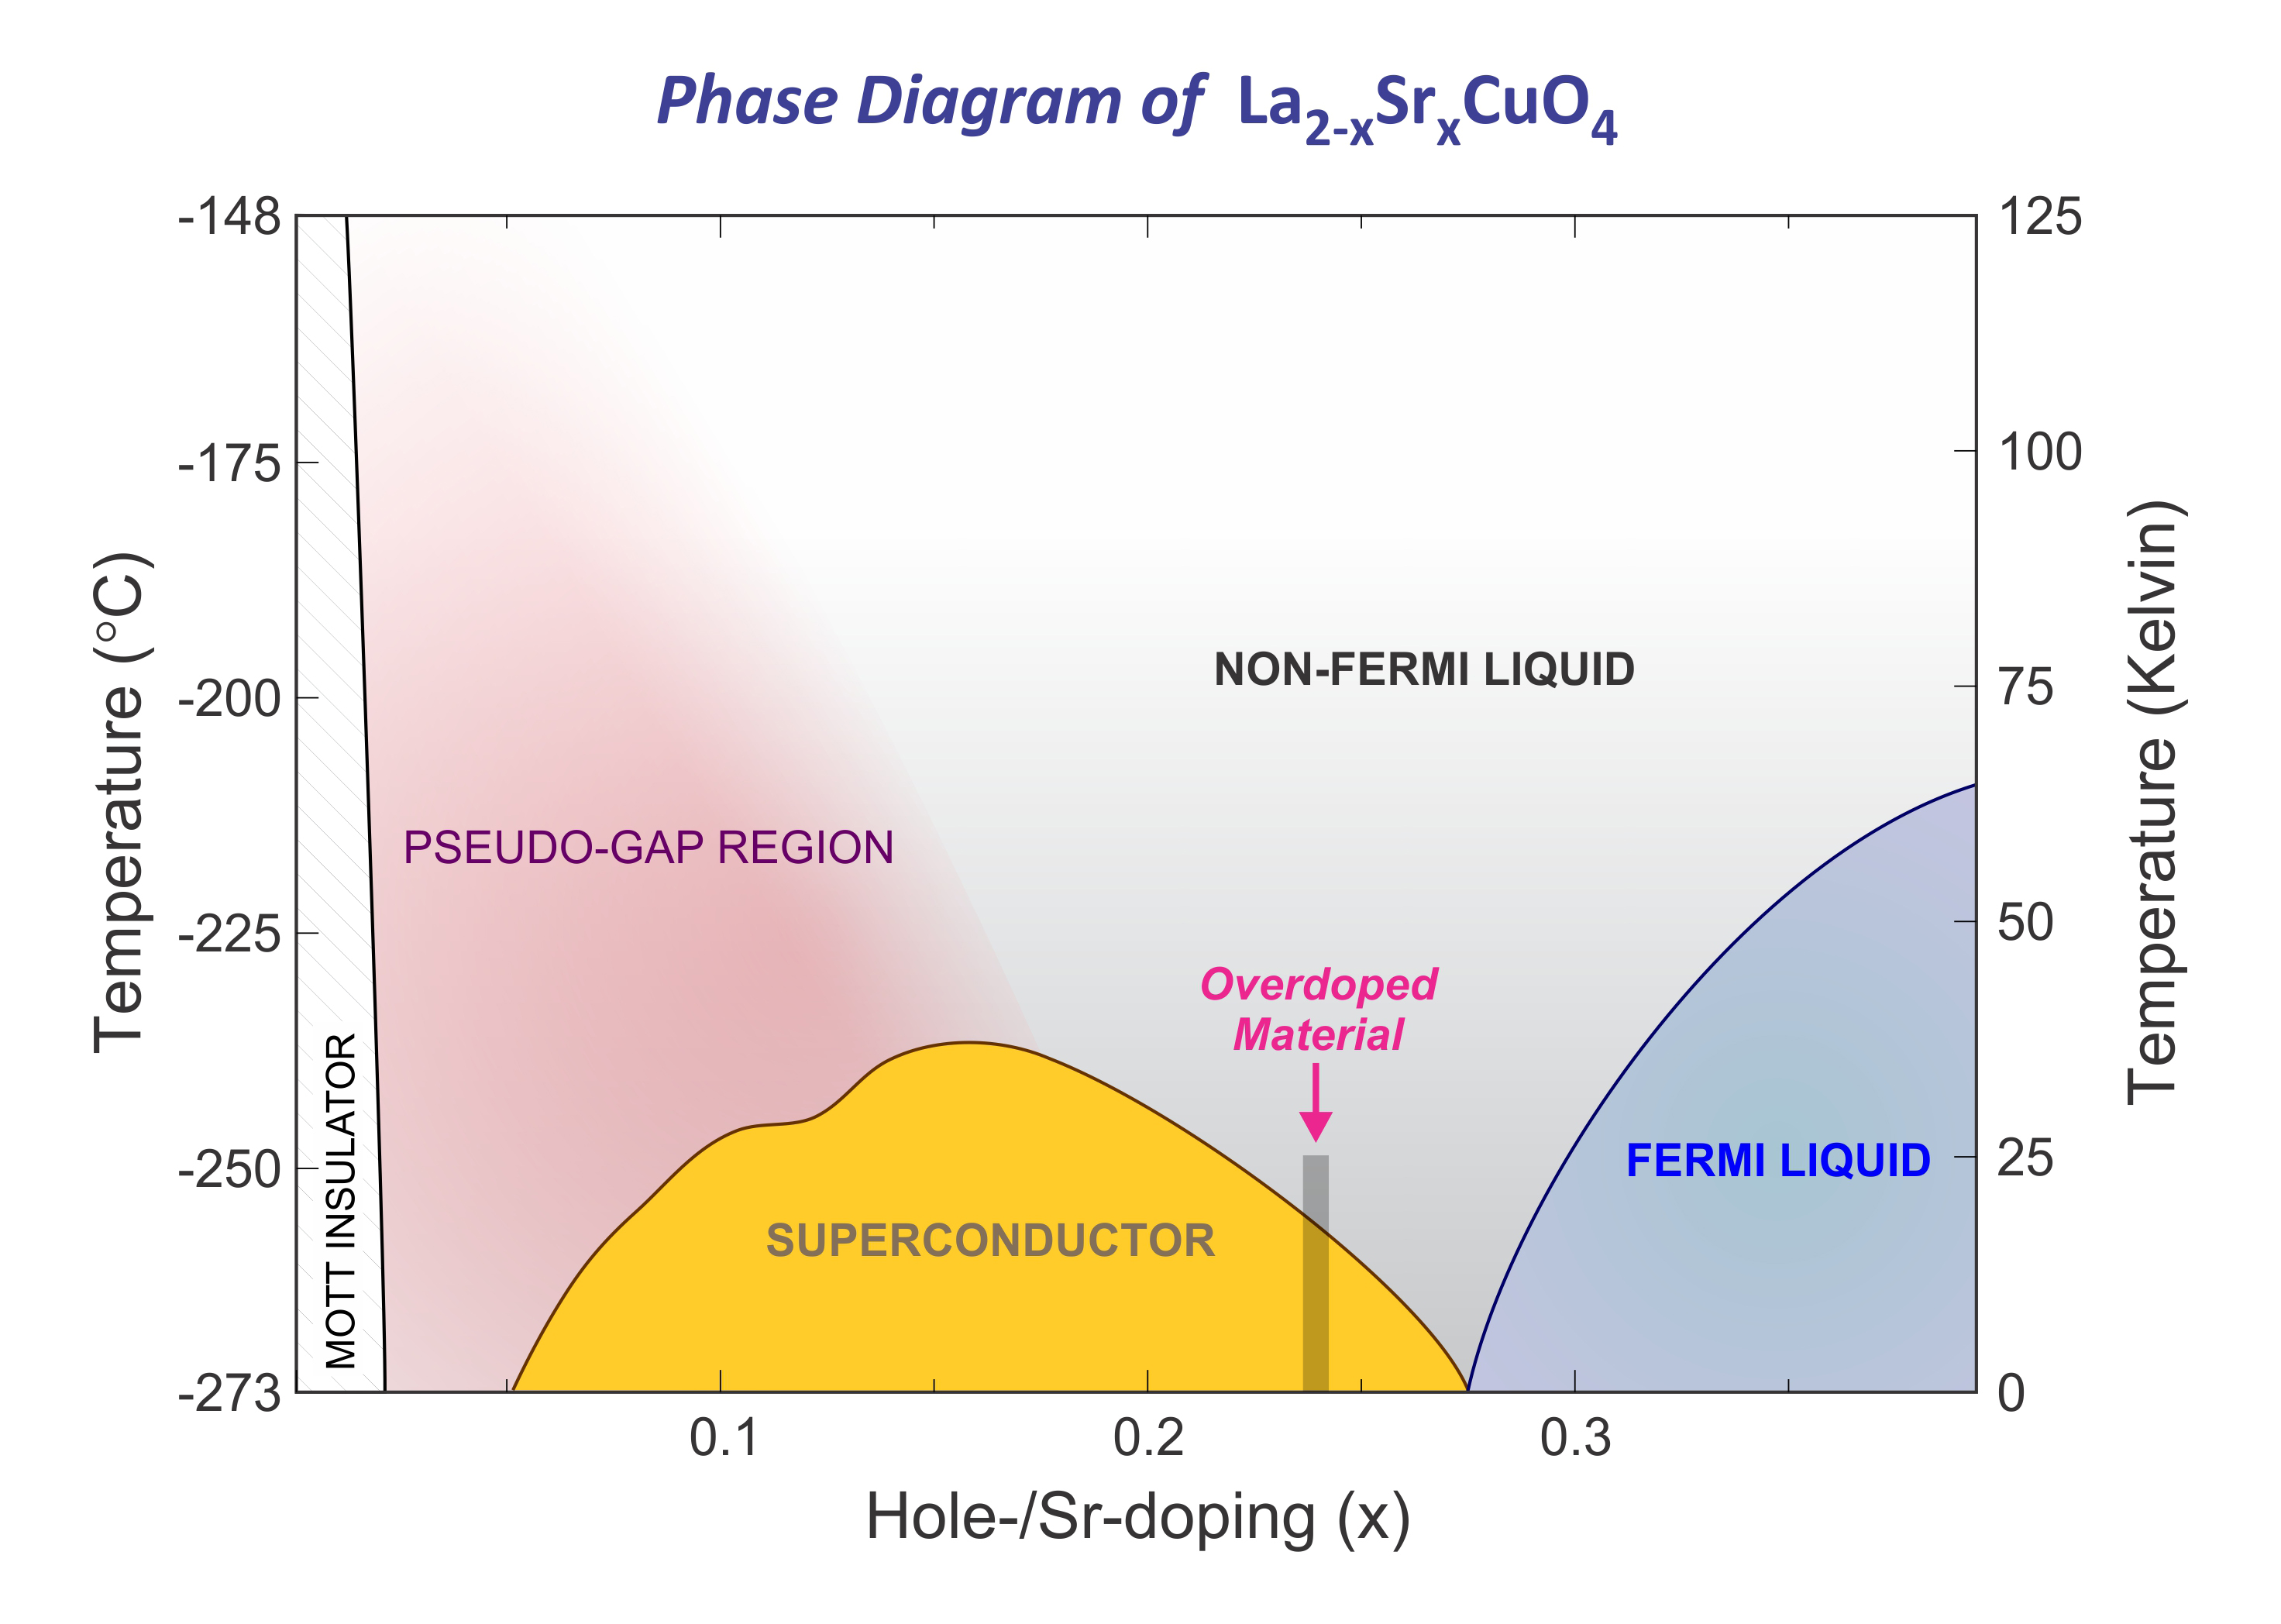 The phase diagram shows how the properties of the material La<sub>2-x</sub>Sr<sub>x</sub>CuO<sub>4</sub> depend on temperature and doping. Doping means in this case that a part of the lanthanum is replaced by strontium &#8211; the amount of doping is represented by the variable x in the formula. For a combination of values for temperature and doping that correspond to a point within the yellow area, the material behaves as a superconductor, i.e. it conducts electricity without resistance. The doping for the material investigated here is x=0.23 and is marked as a vertical grey line in the diagram. It results in an overdoped state, i.e. the doping is higher than for the optimal case where the material remains superconducting for higher temperatures. The material turns into a Fermi-liquid state for even higher doping. The research presented here shows that some aspects of the Fermi liquid are already present for lower doping.